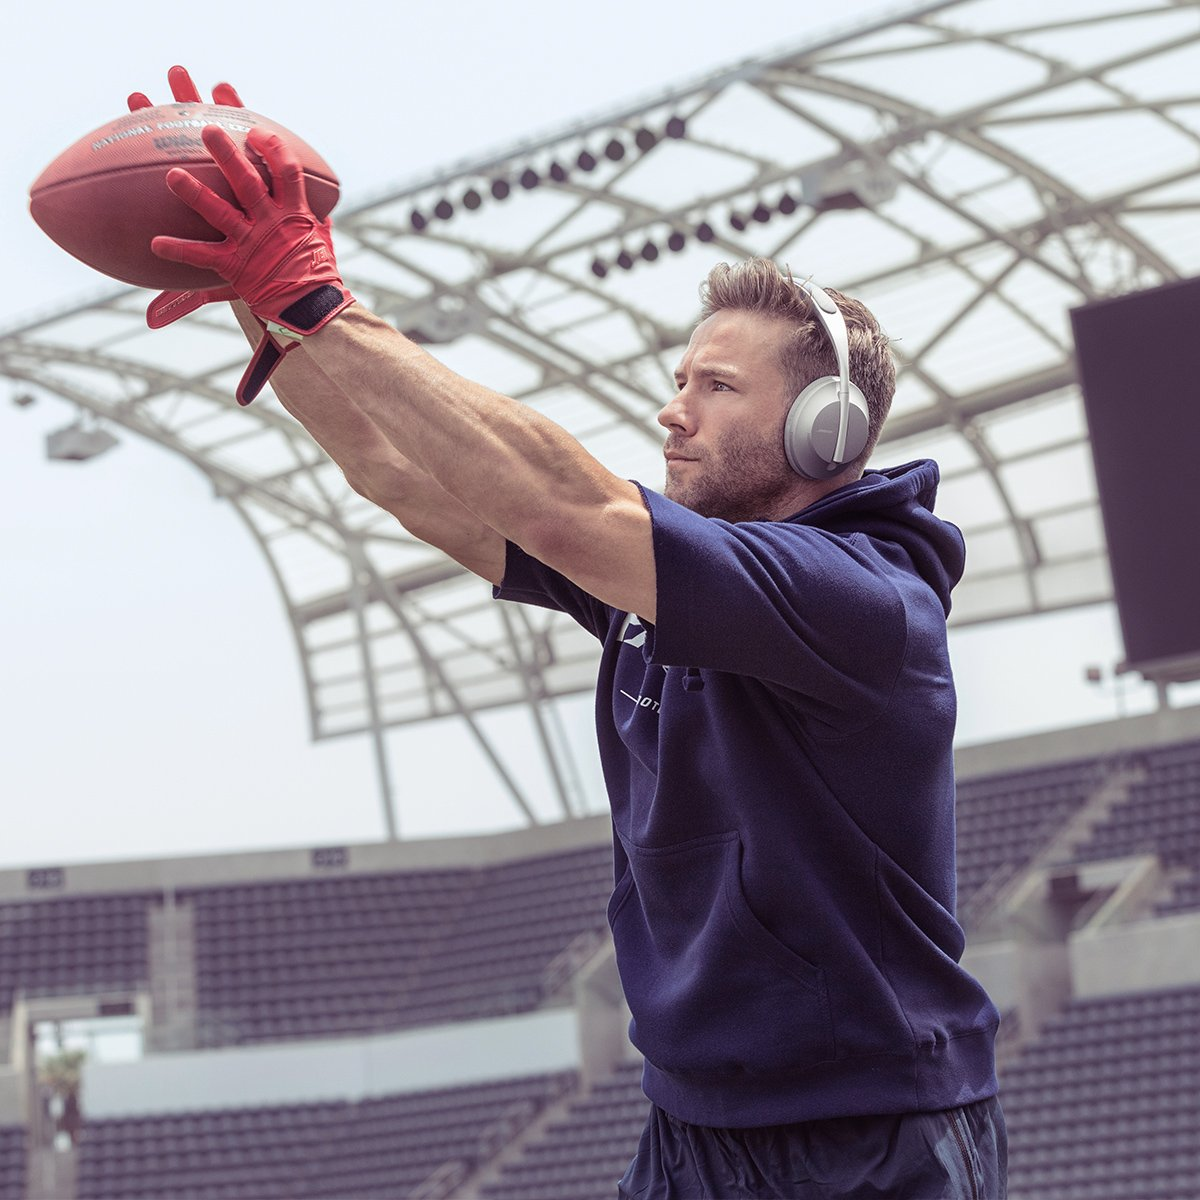 There was no game lastweek but there are no days off for @edelman11. #NEvsPHI#BoseHeadphones#NFL100 bose.life/2lYiFRx